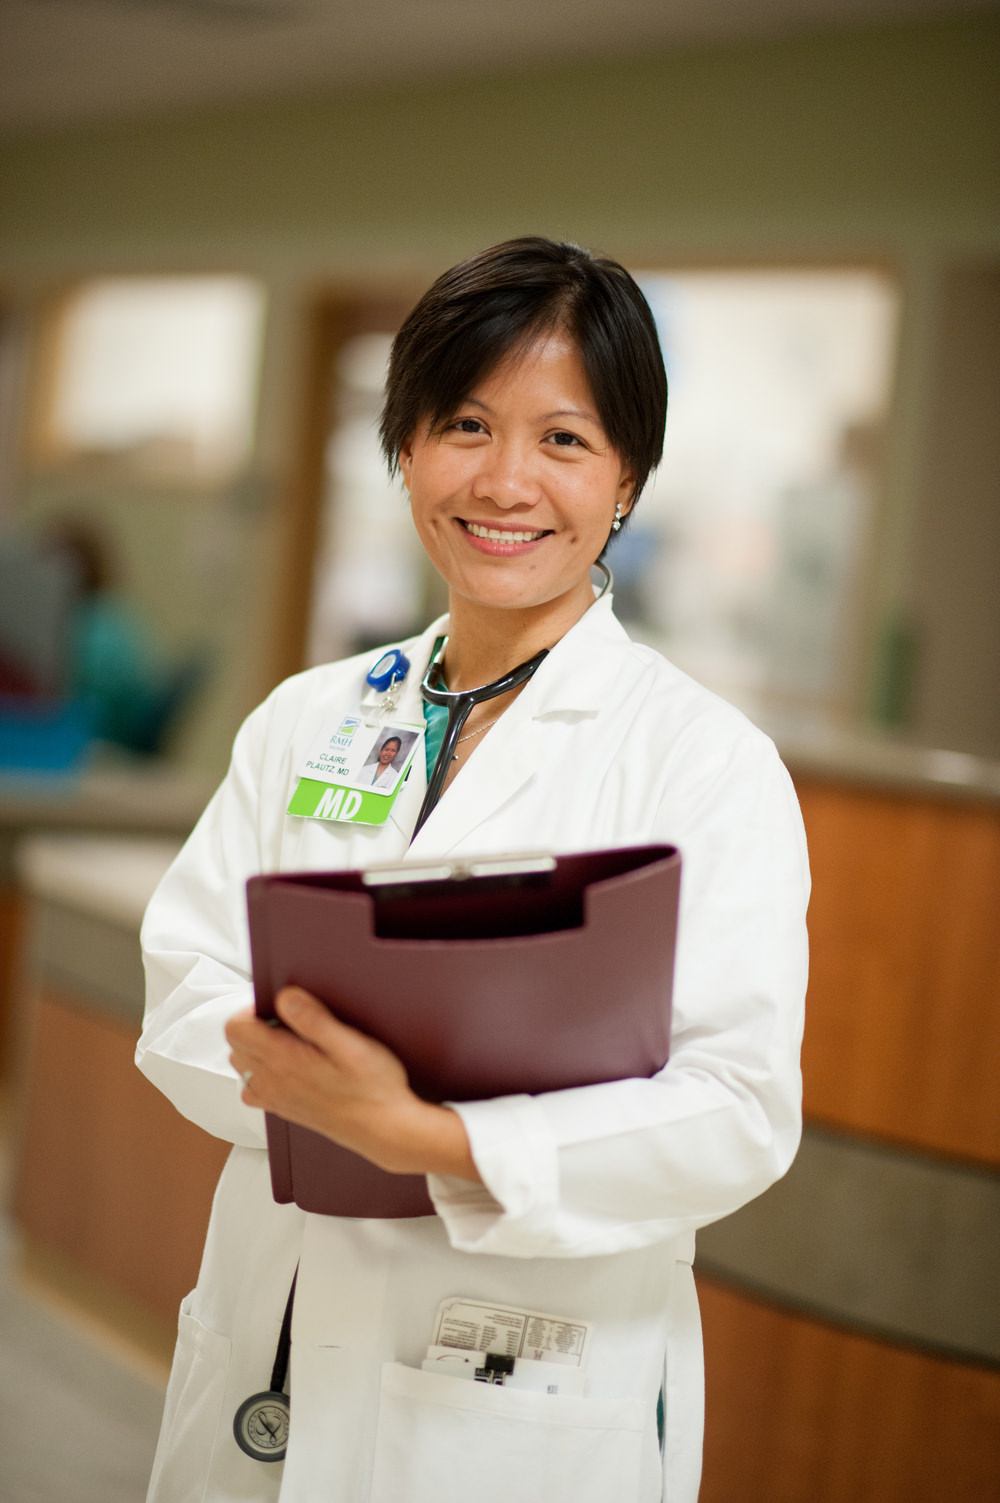 Corporate Photography: Sentara Healthcare